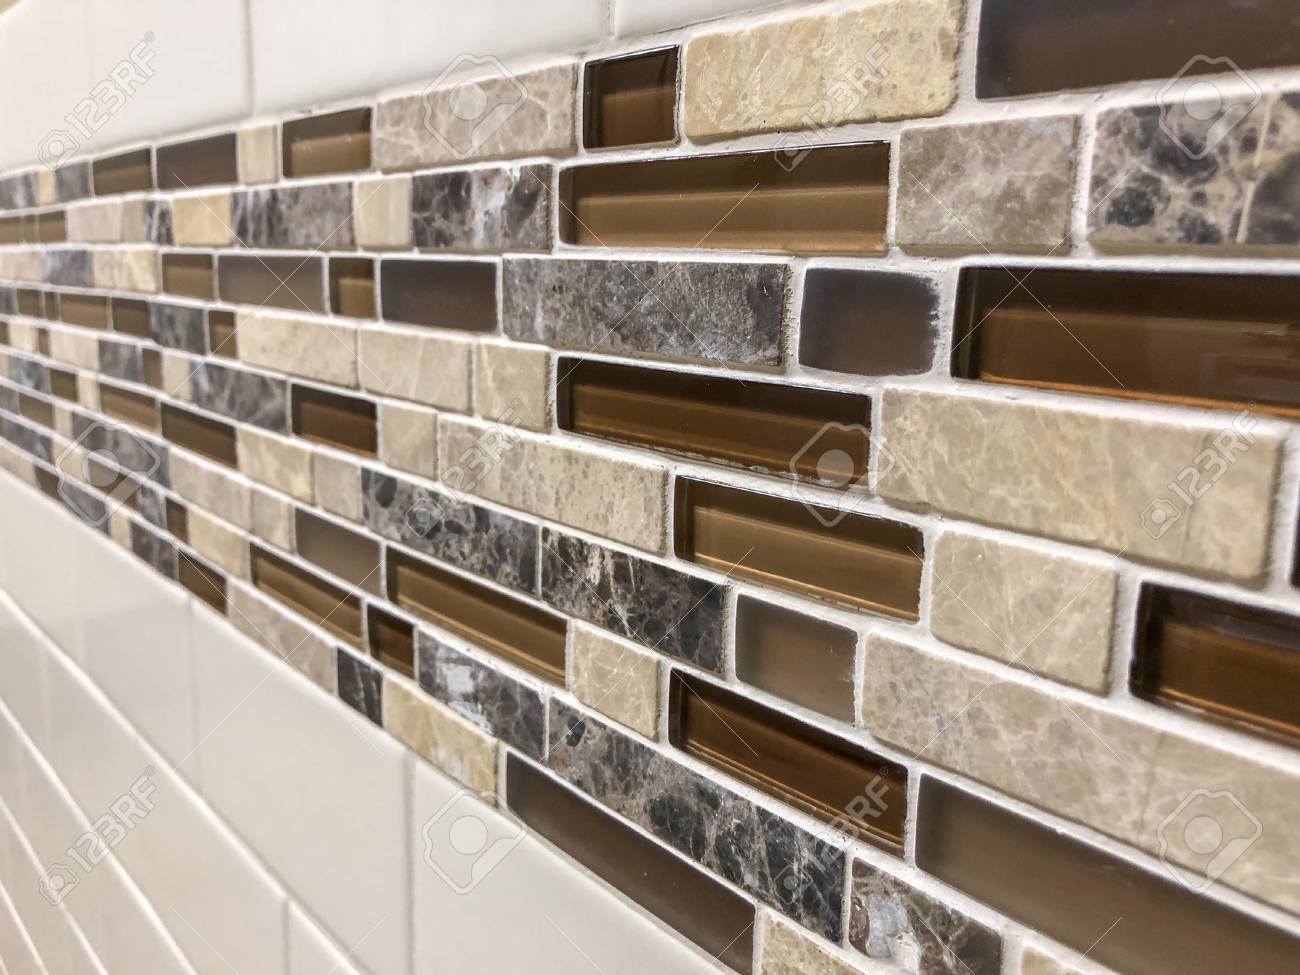 - Modern Decorative Glass And Stone Wall Backsplash For The Kitchen